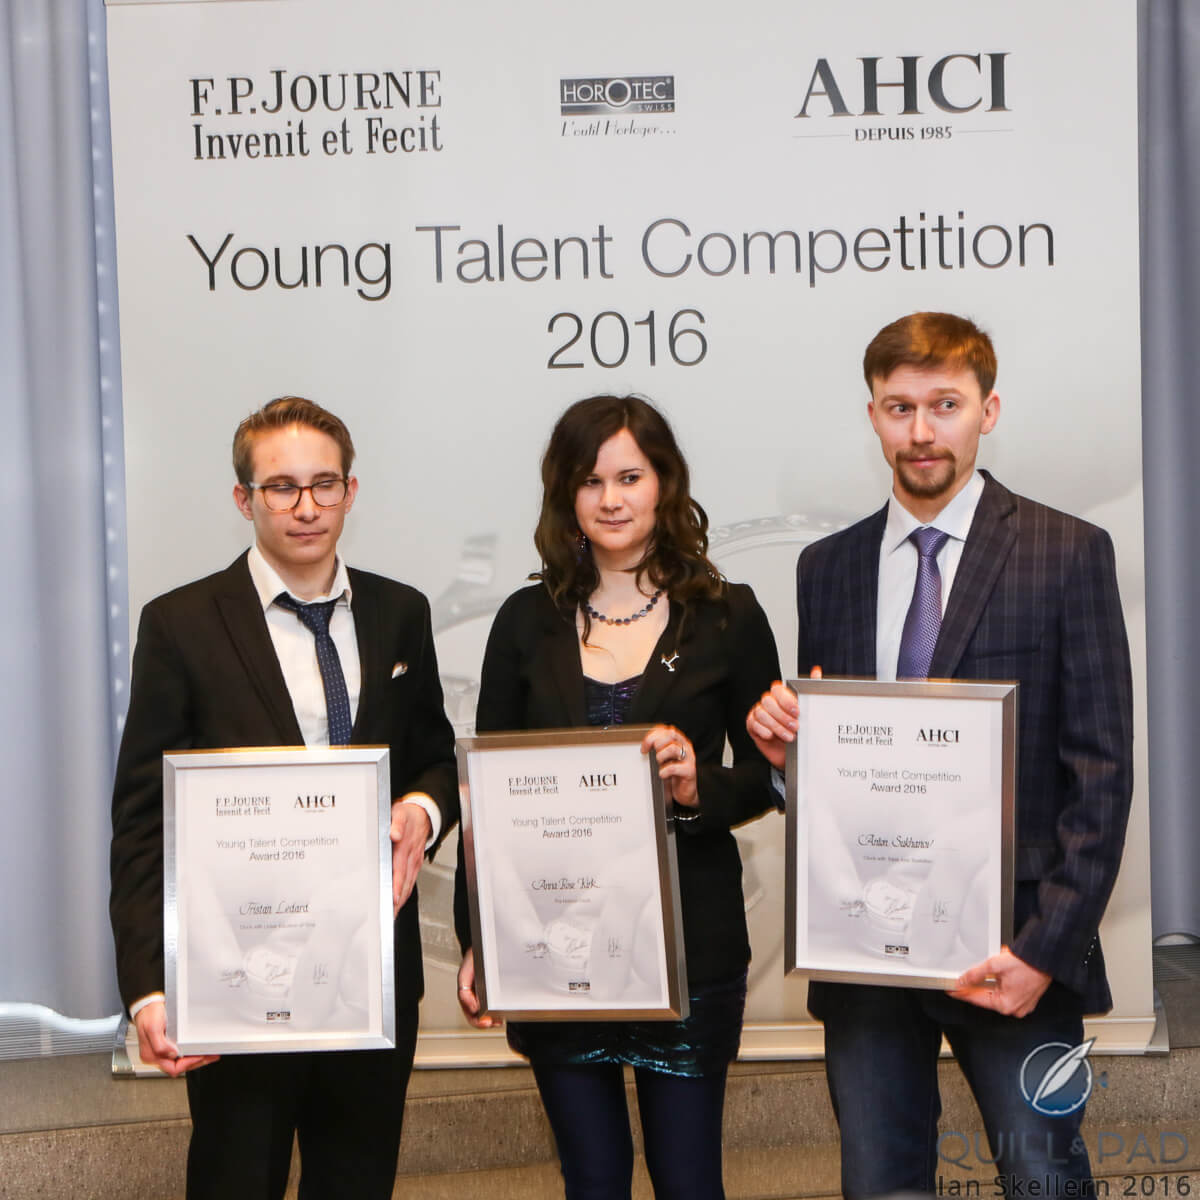 The AHCI Young Talent Competition 2016 winners (L-R): Tristan Ledard, France, for clock displaying a linear equation of time; Anna-Rose Kirk, England for her Horizon Clock, and Anton Sukhanov from Russia for his Triple-Axis Tourbillon clock